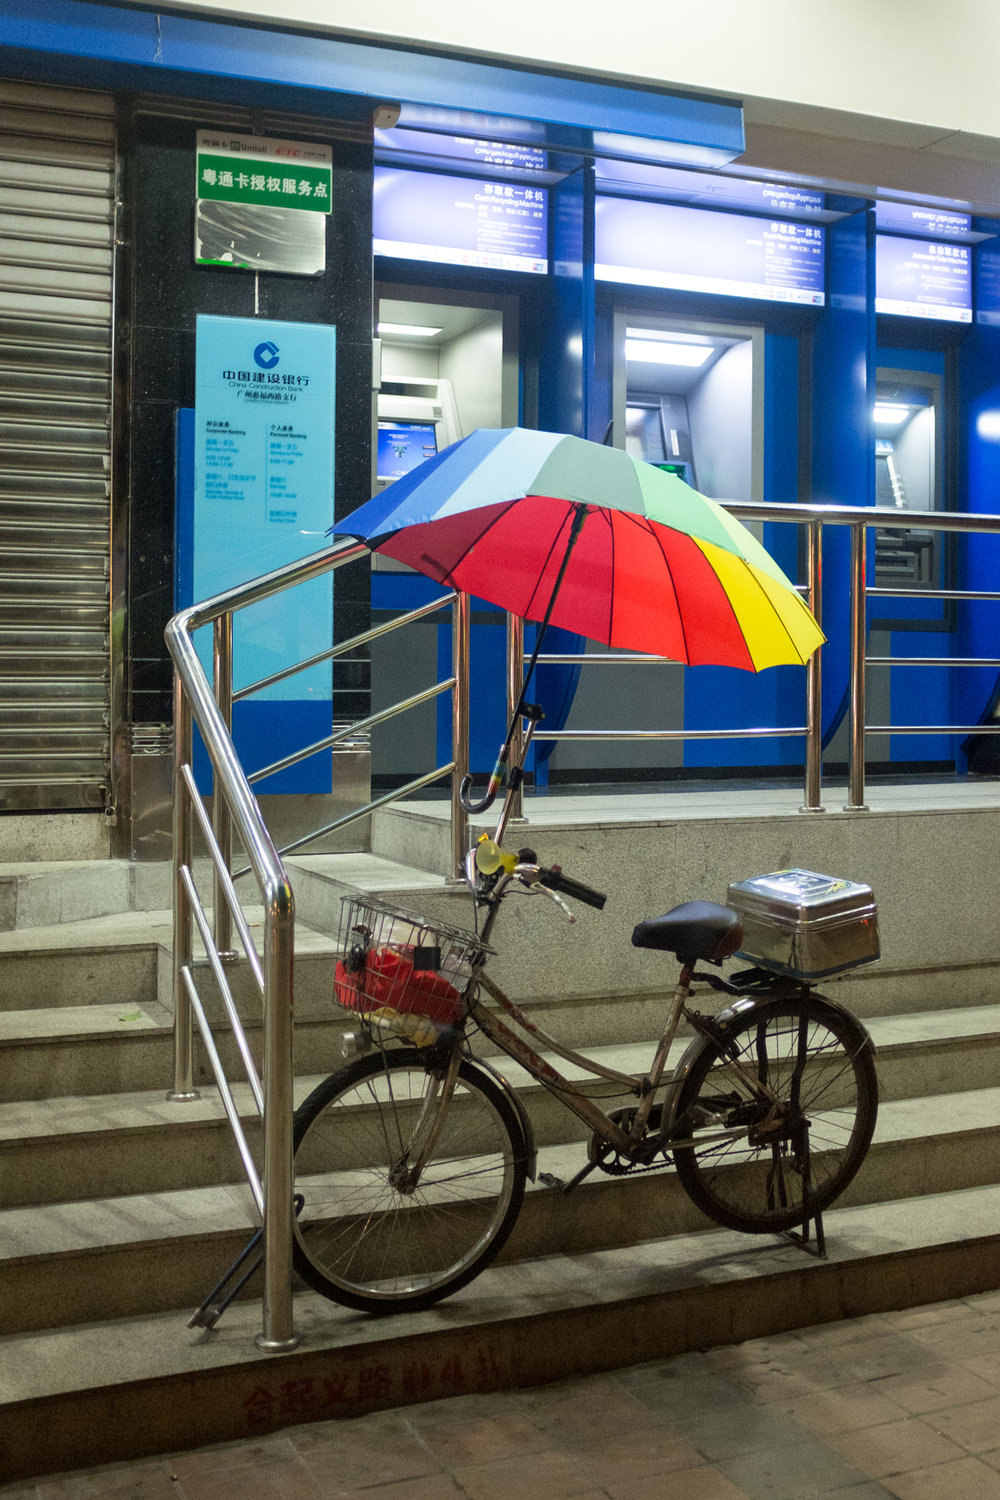 Bicycle w/Umbrella